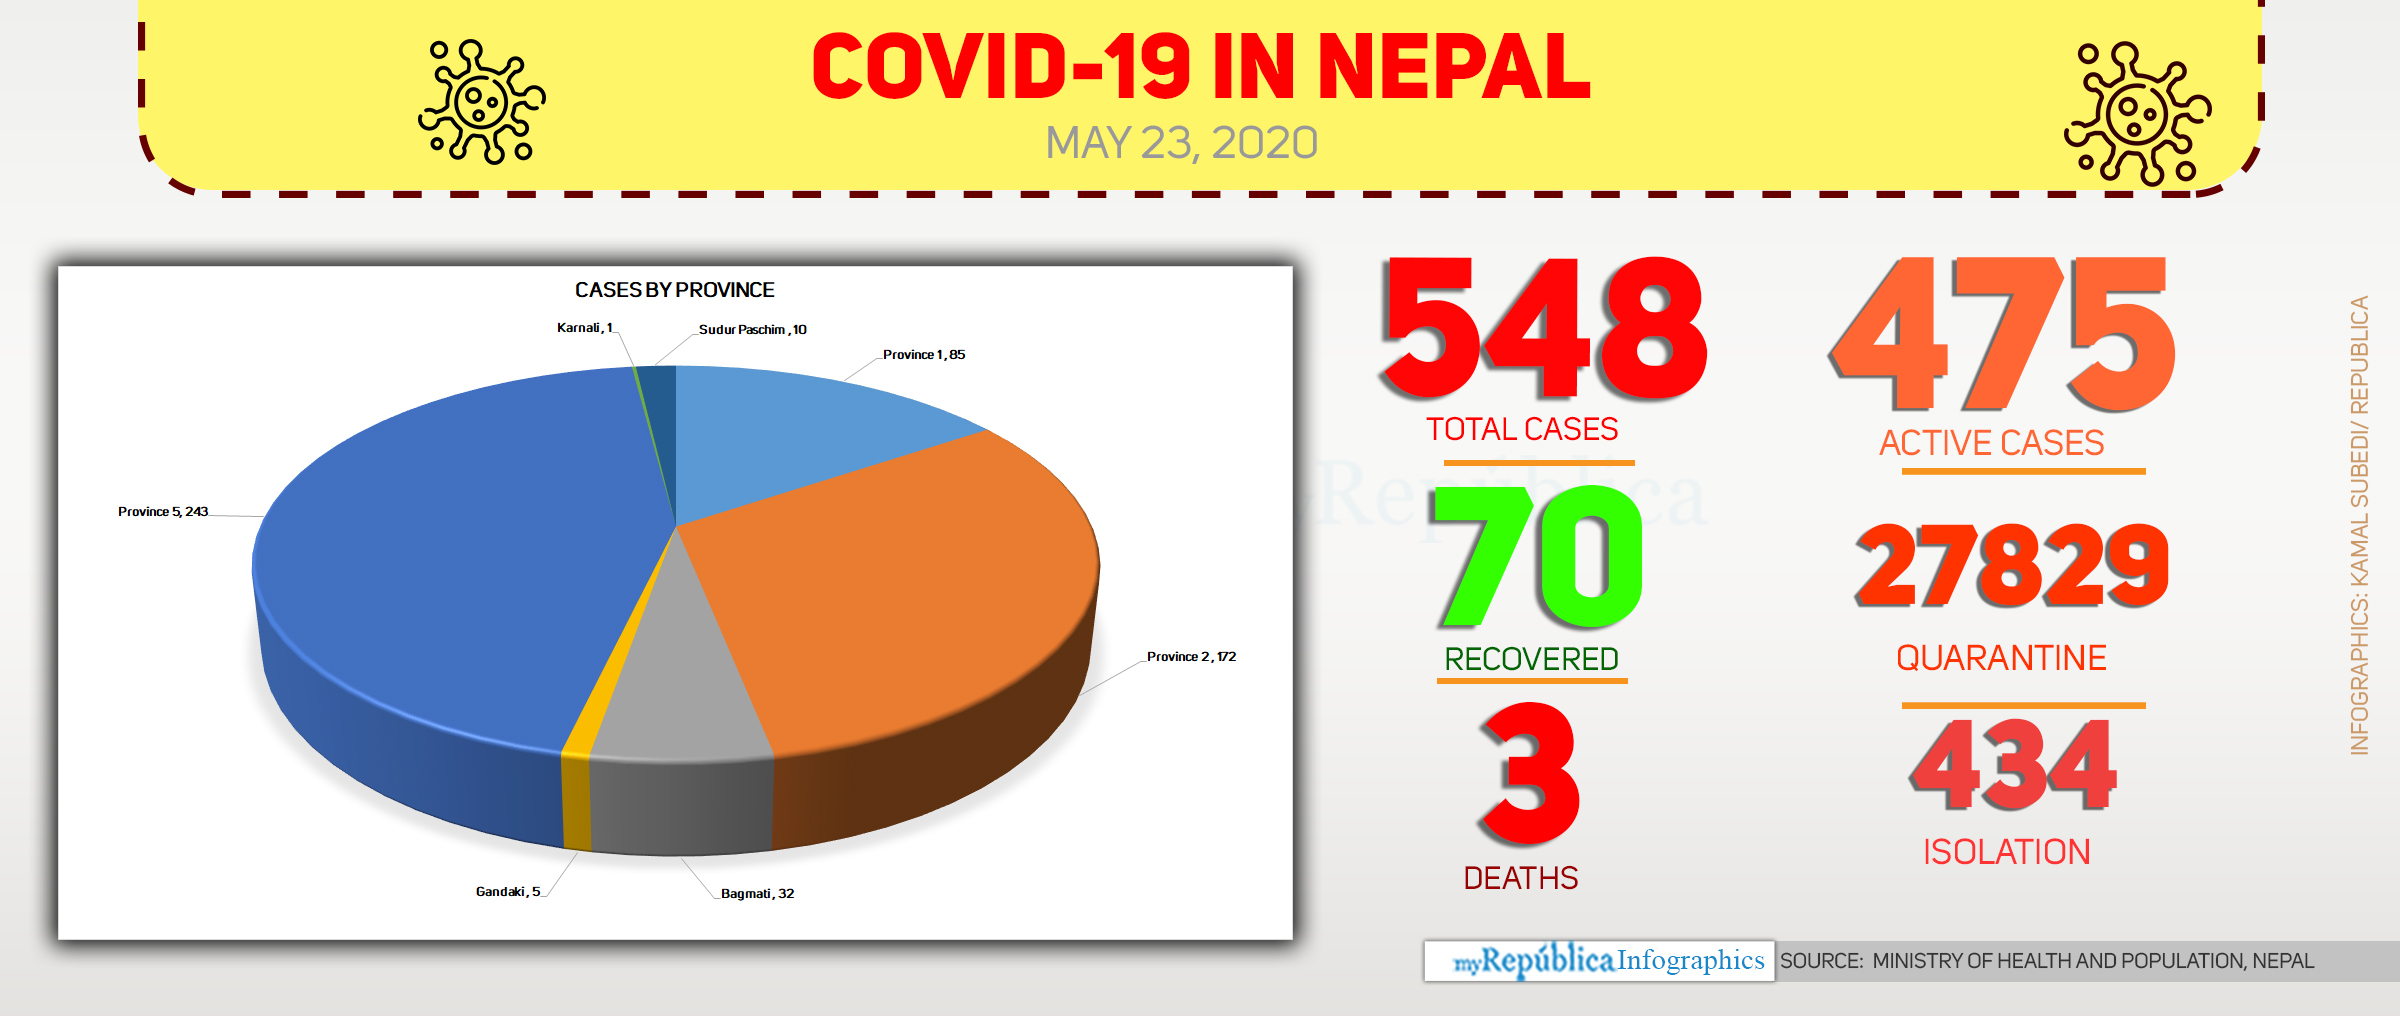 With 32 new cases today morning, COVID-19 national tally soars to 548